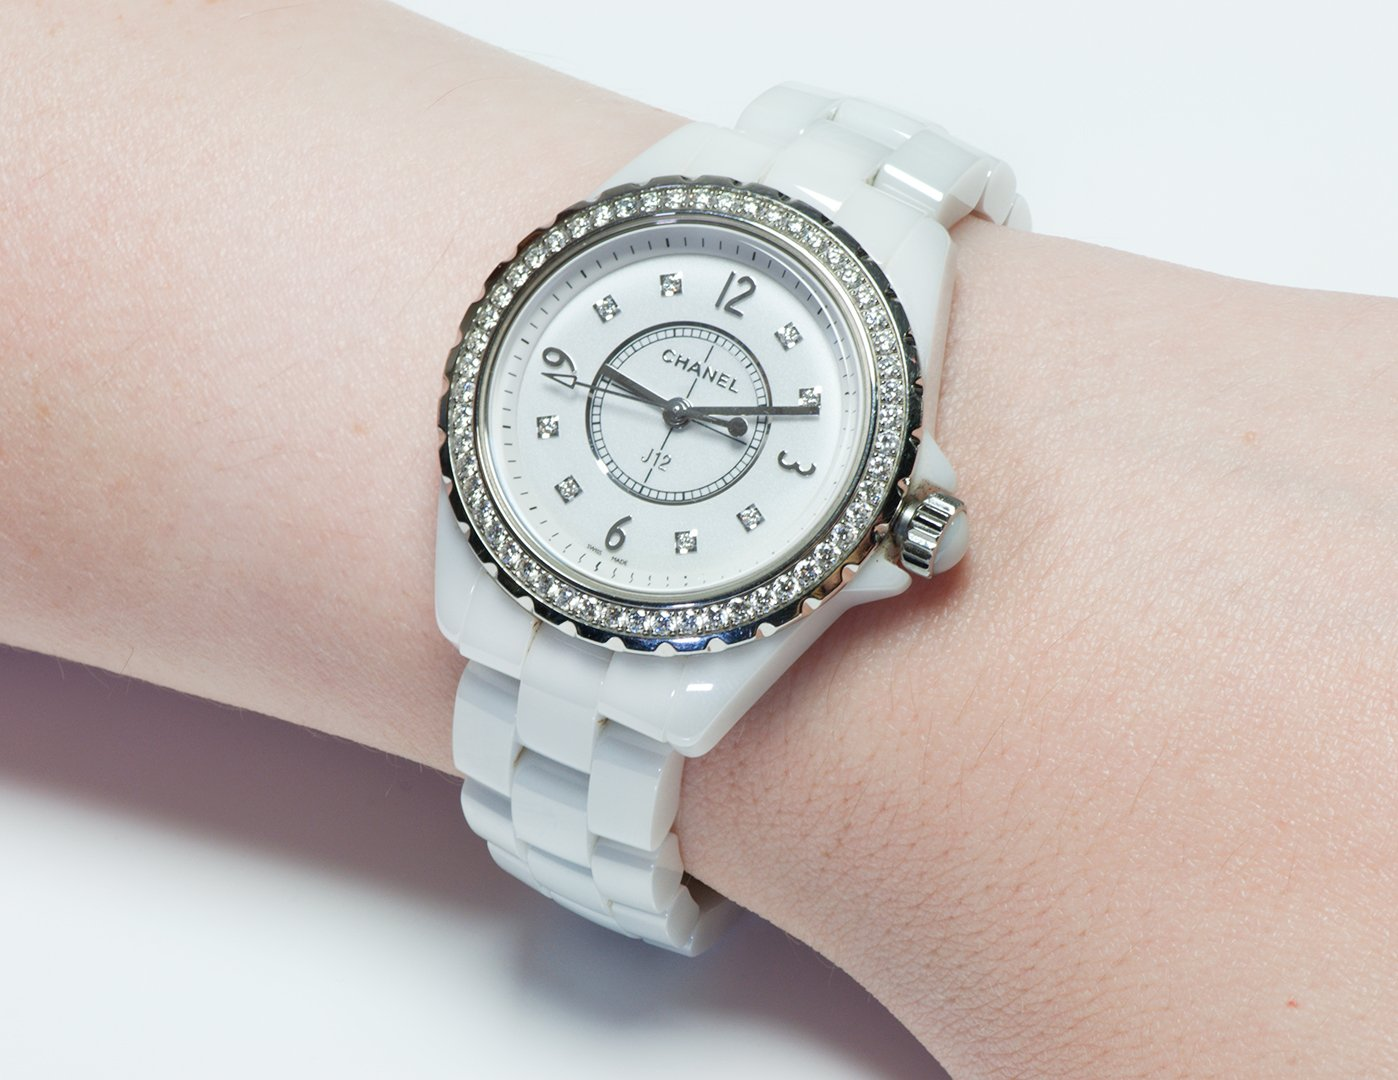 chanel-j12-diamond-white-ceramic-womens-watch